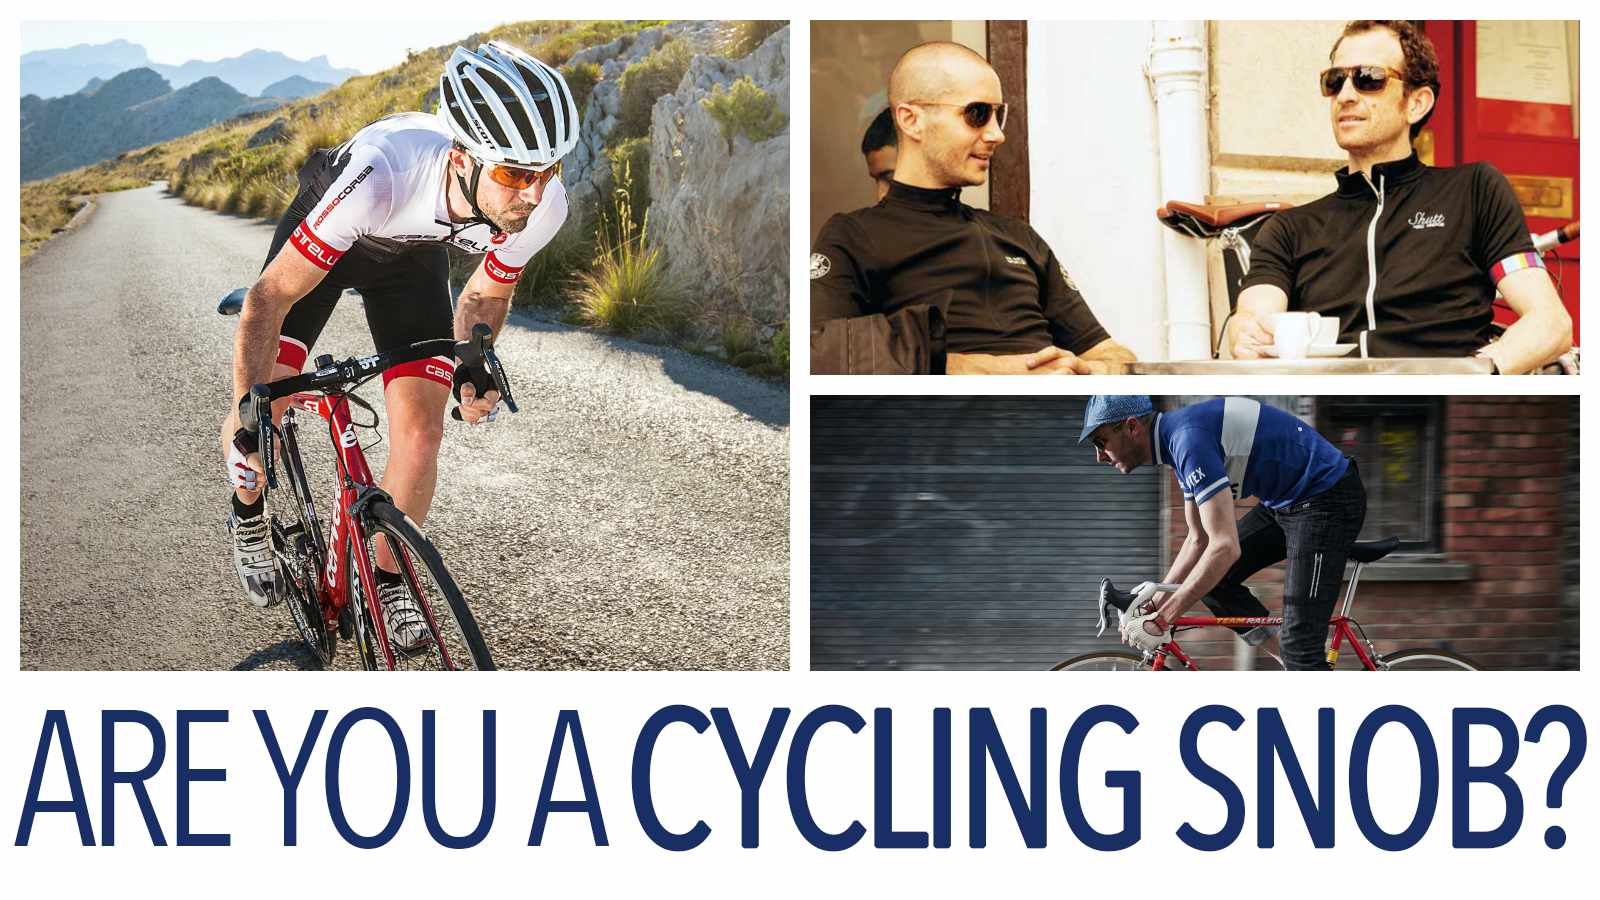 Find out your level of cycling snobbery with our quiz